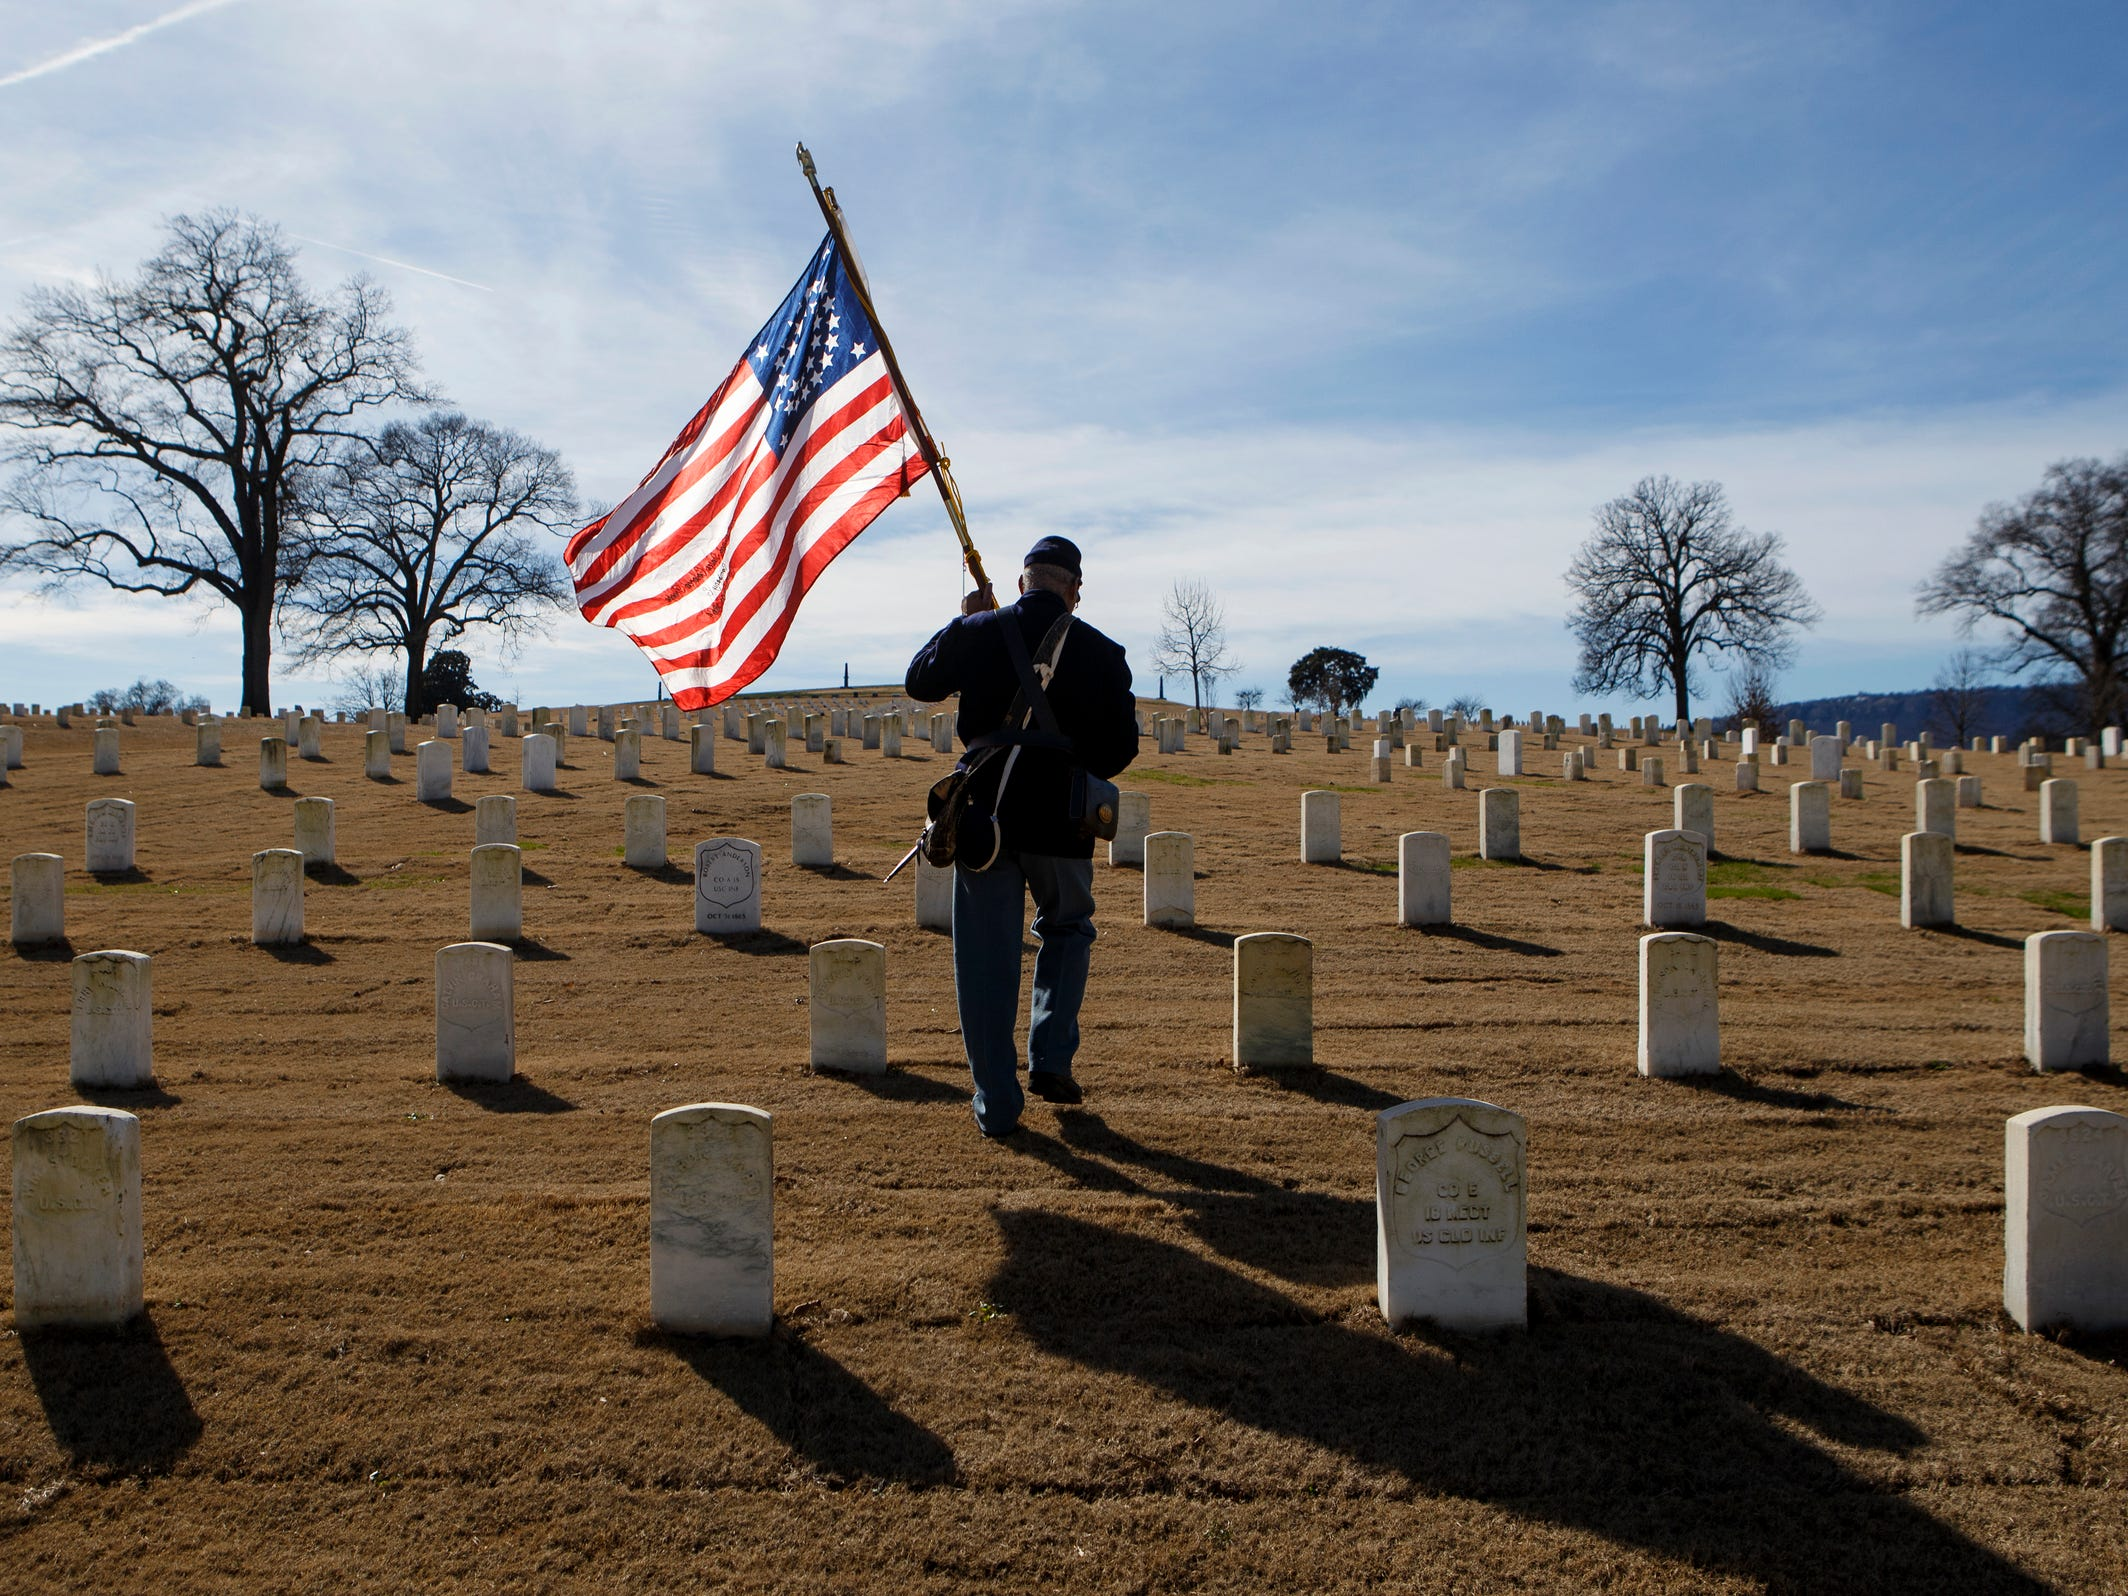 Donald Tatum, a quarter master sergeant in the 44th United States Colored Troops historical re-enactment group, carries a Civil War-era American flag through the Chattanooga National Cemetery before a wreath laying ceremony as part of the Martin Luther King Jr. Day of Service in Chattanooga, Tenn.